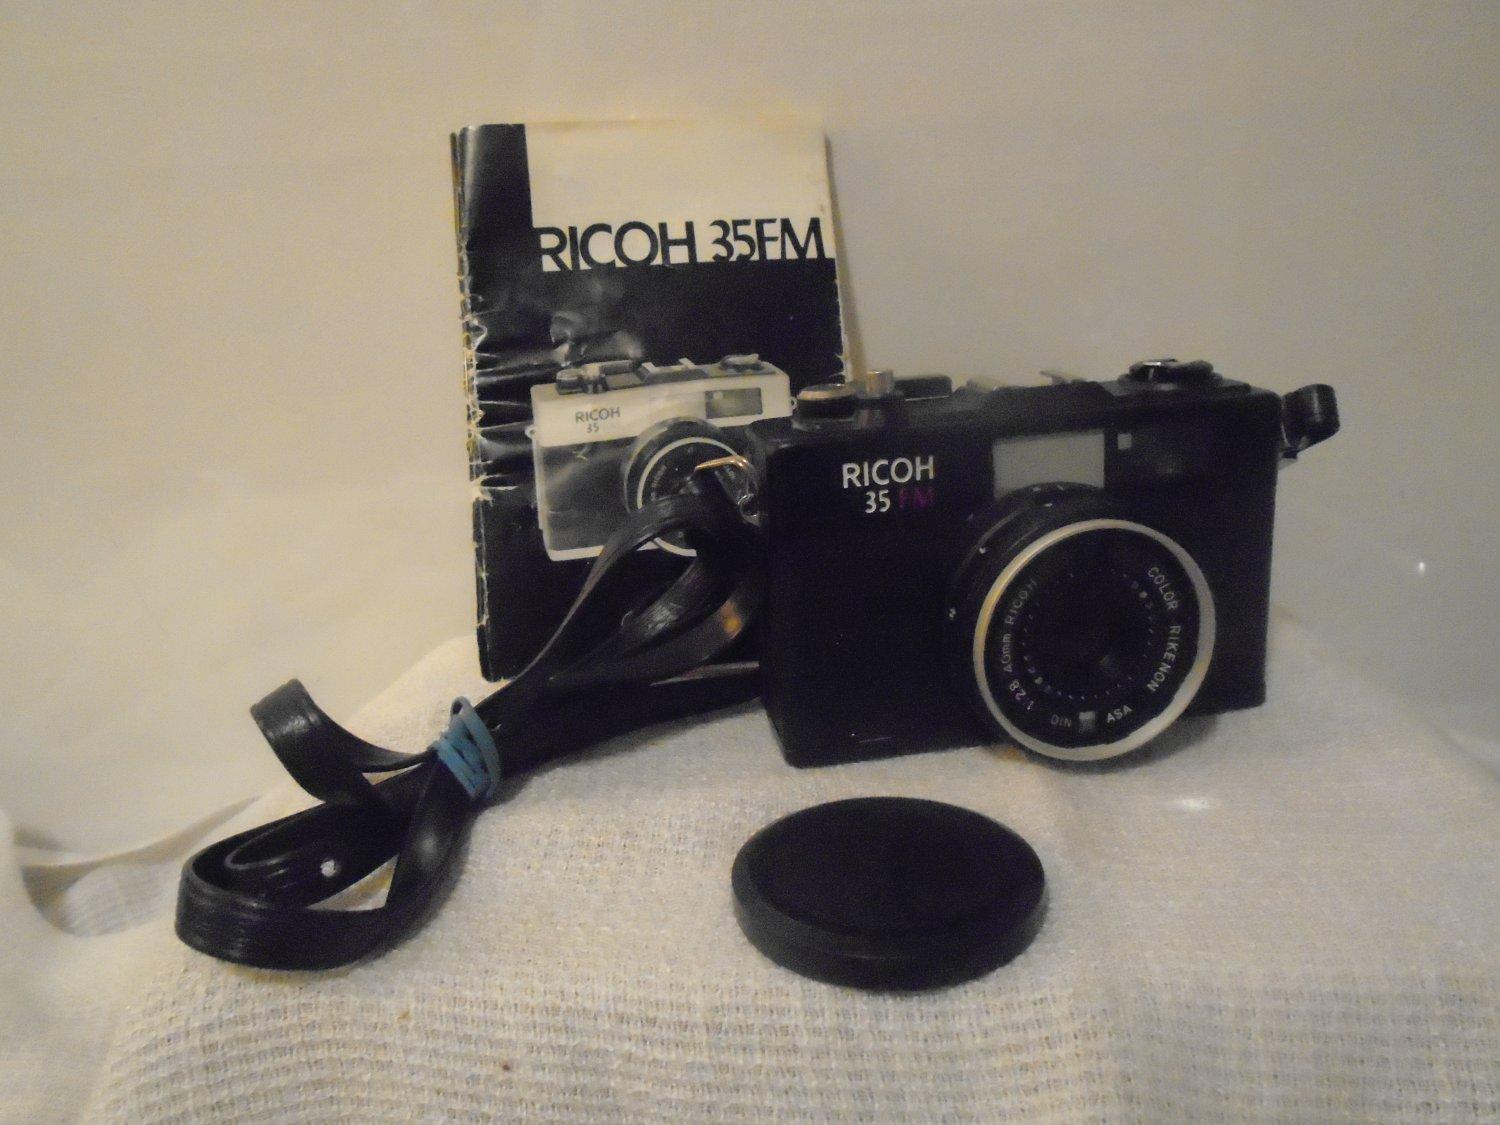 Ricoh 35FM Film Camera Outfit in Original Packaging